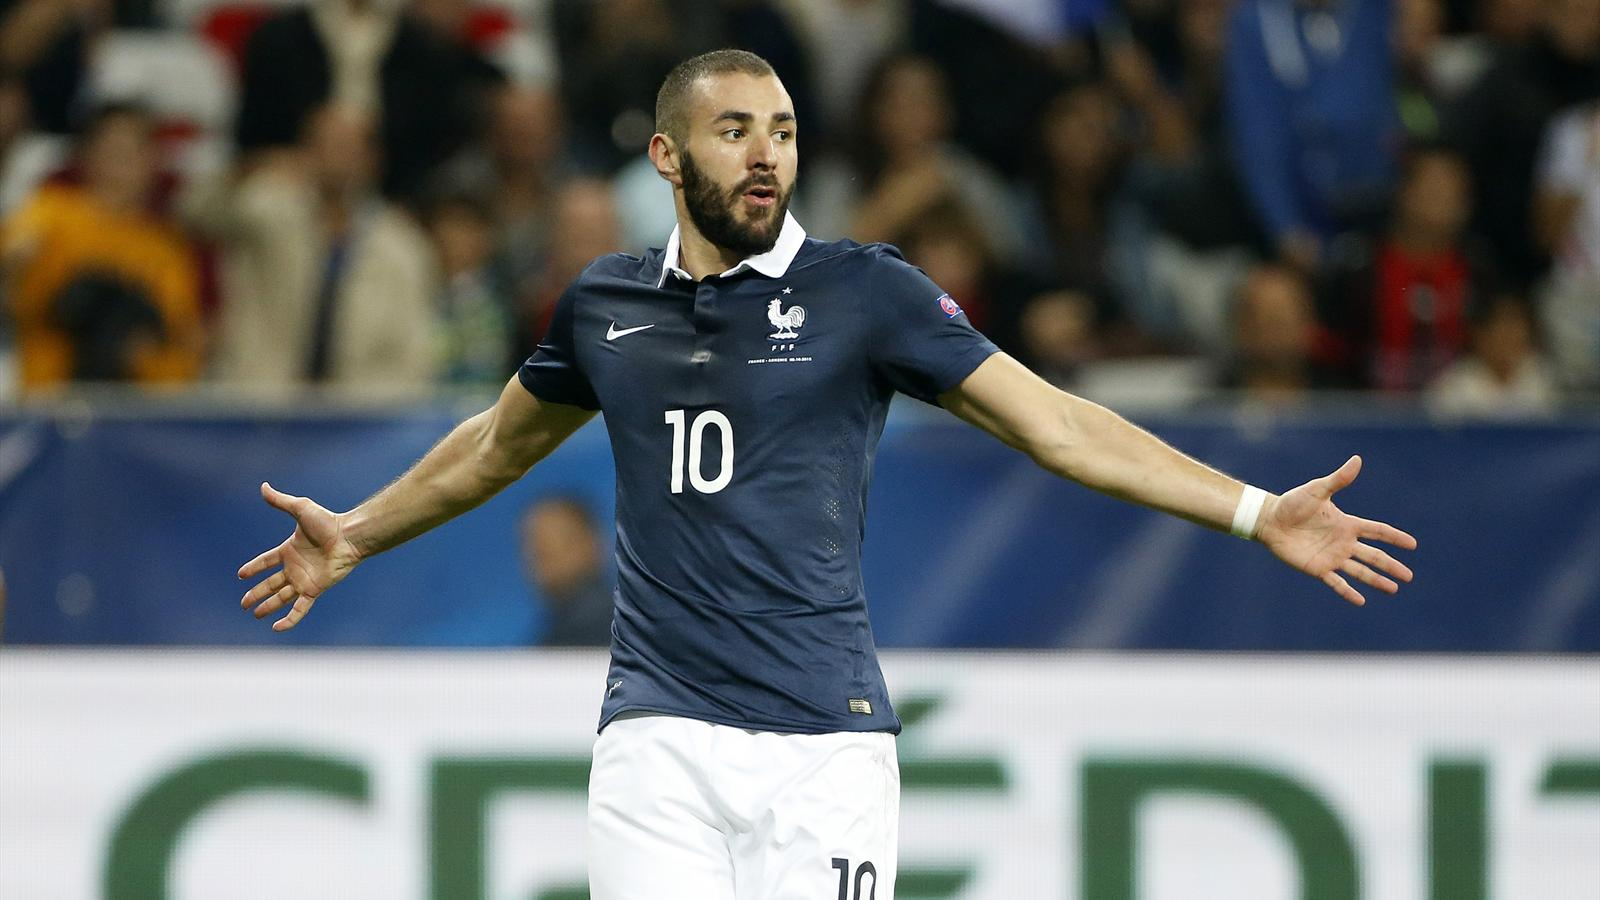 Must see Benzema World Cup 2018 - 2084896-43693137-1600-900  Graphic_1002523 .jpg